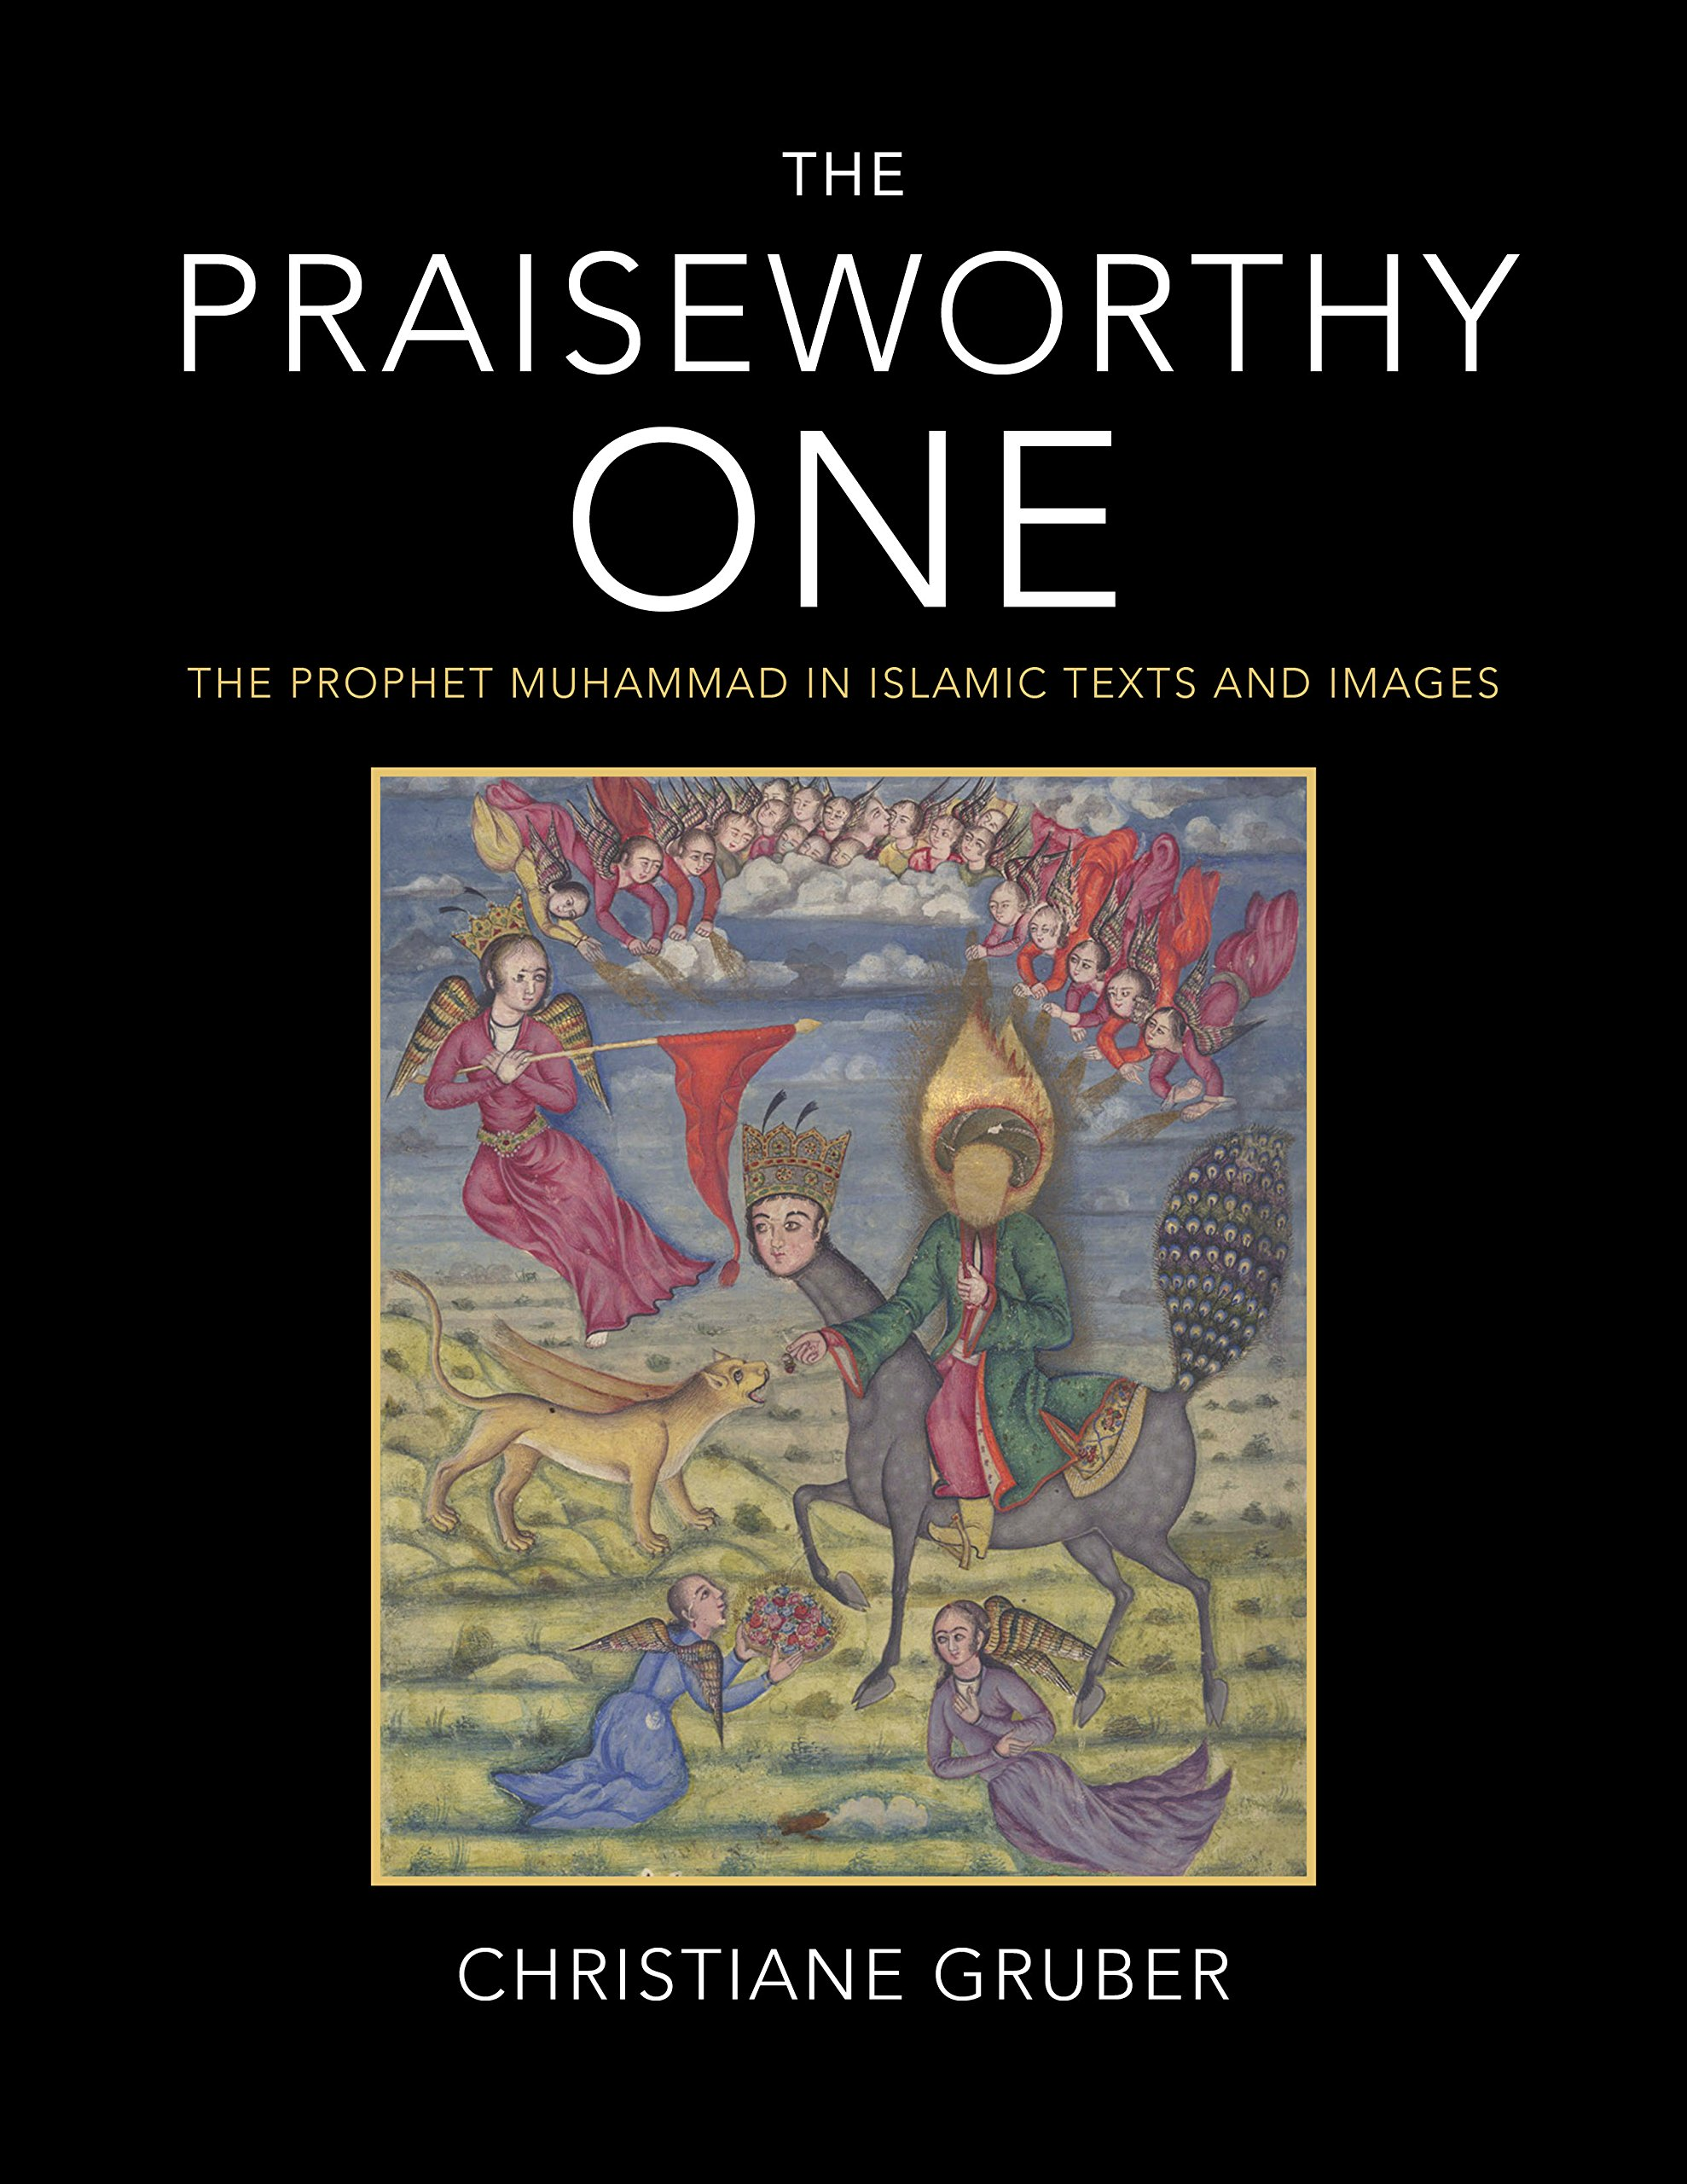 The Praiseworthy One: The Prophet Muhammad in Islamic Texts and Images by Indiana University Press - Indiana University Press